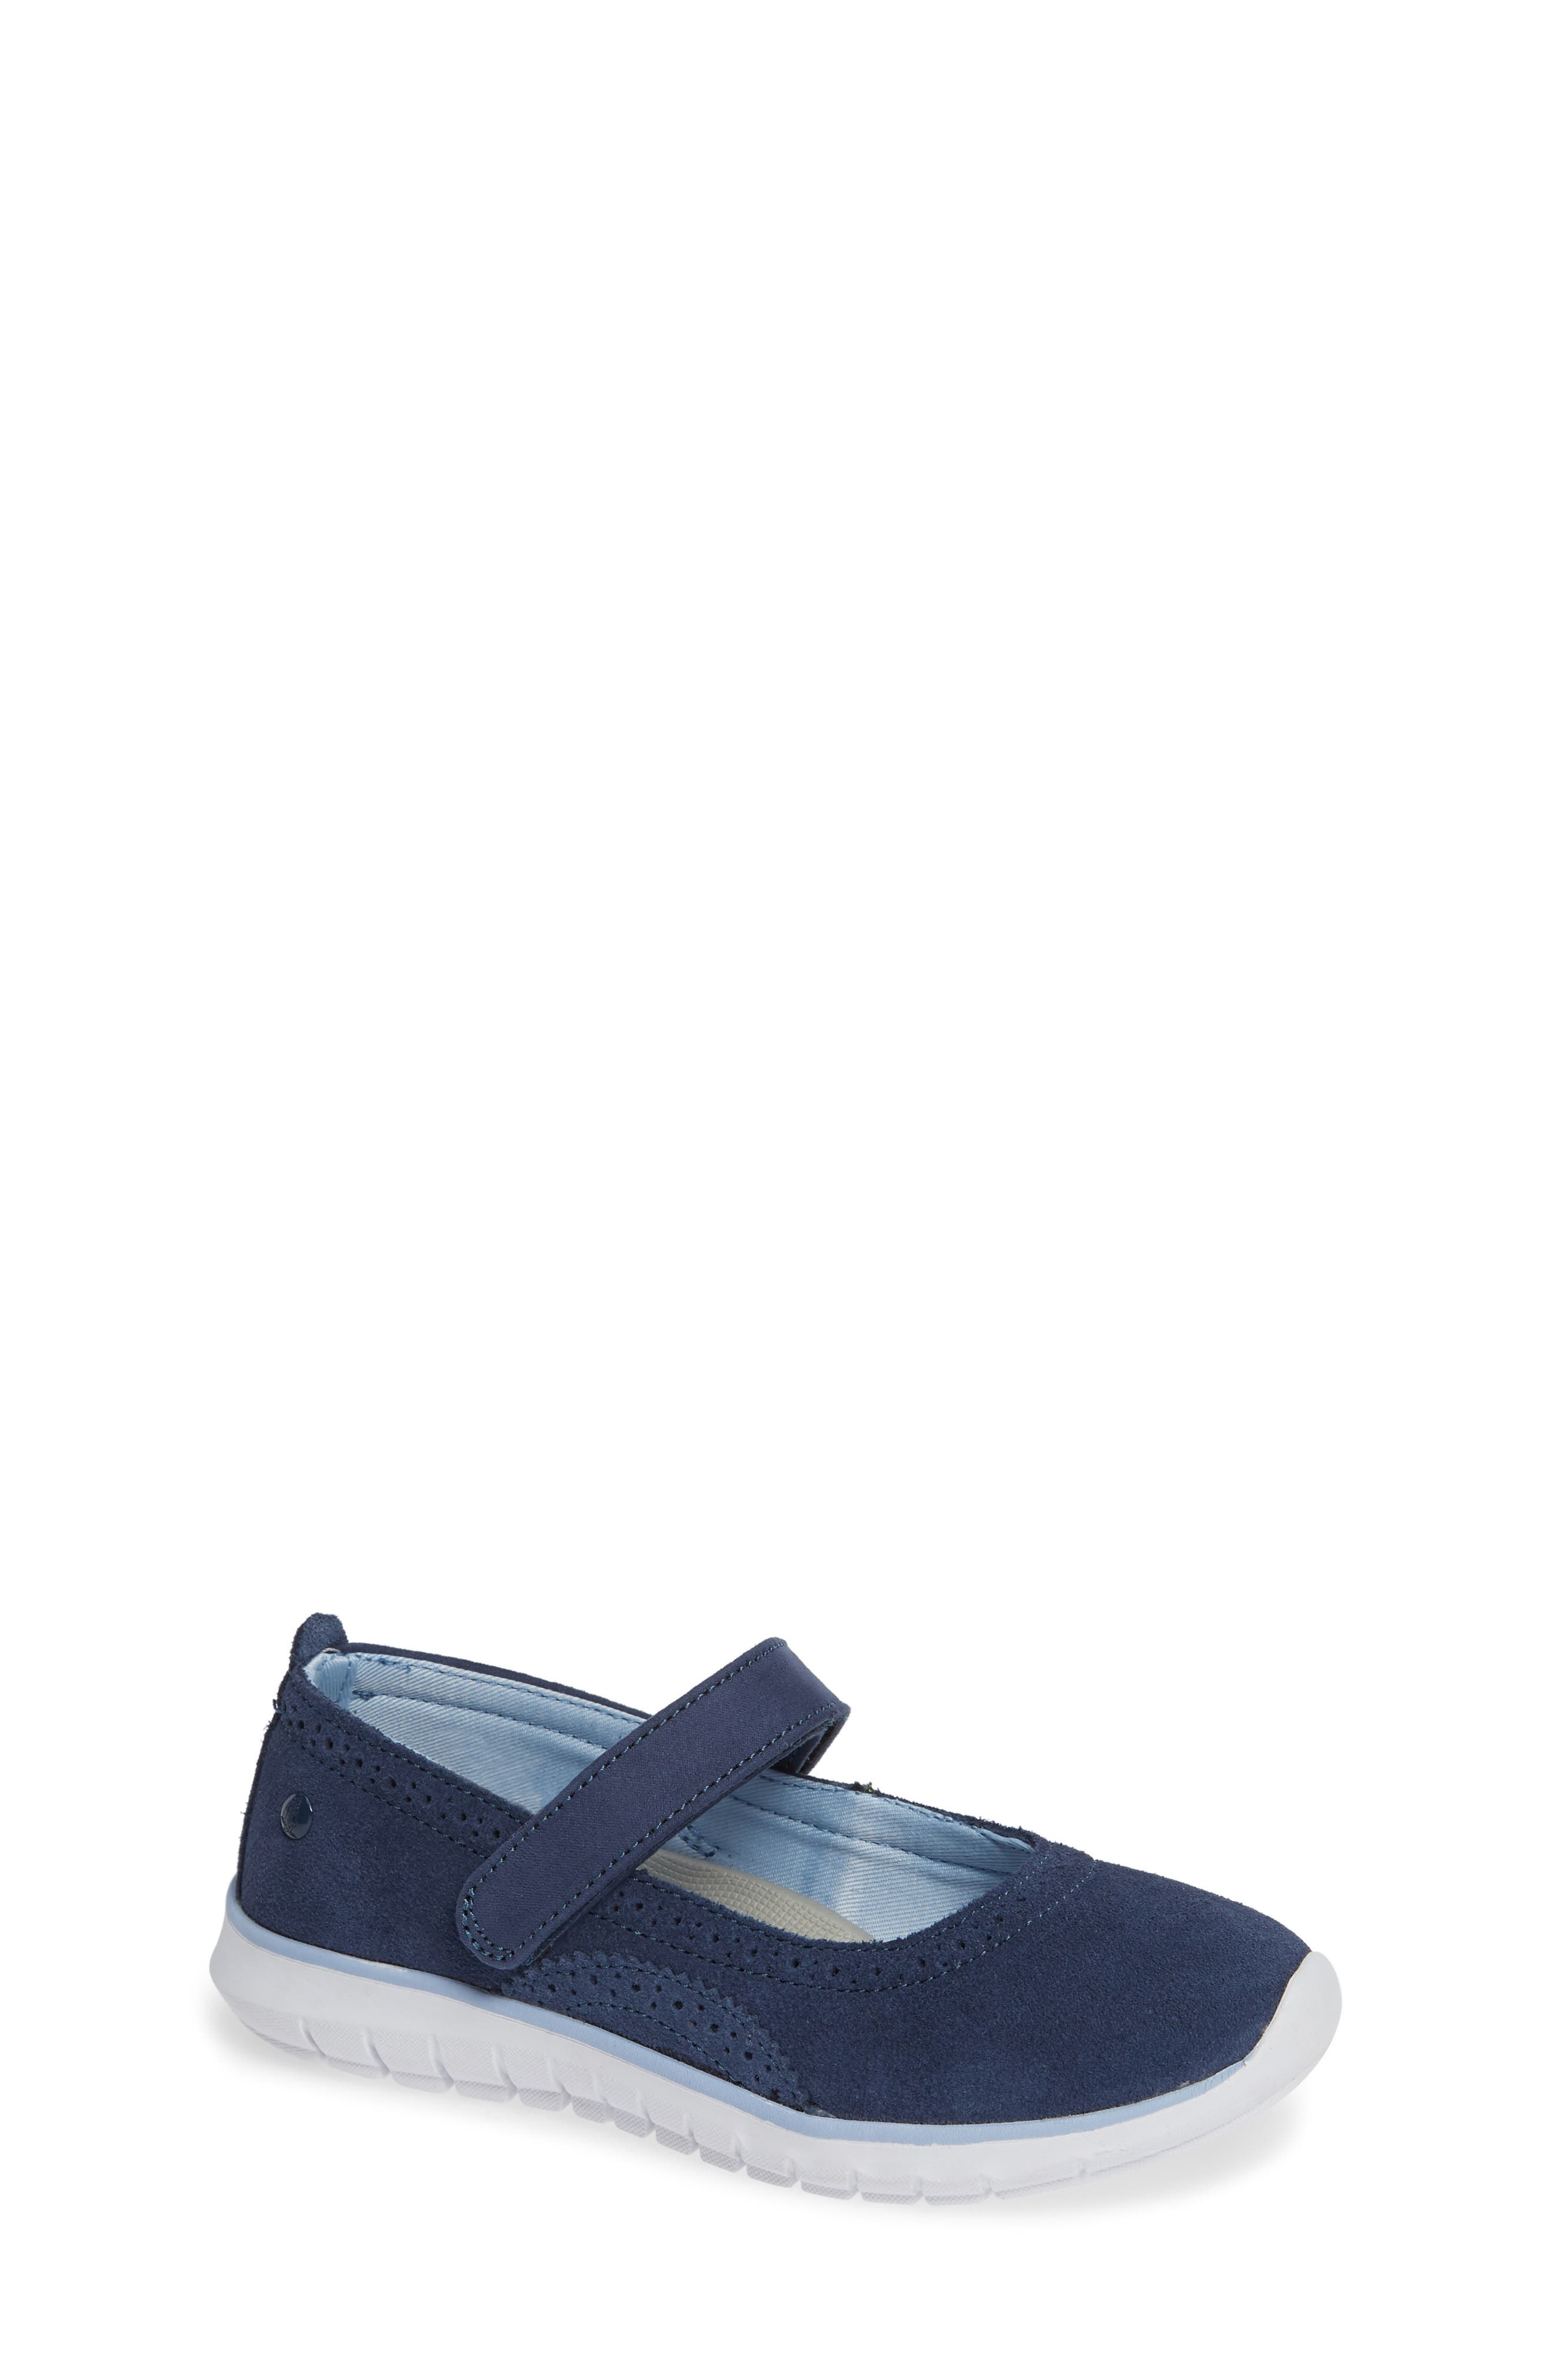 HUSH PUPPIES<SUP>®</SUP> Flote Tricia Mary Jane Flat, Main, color, NAVY